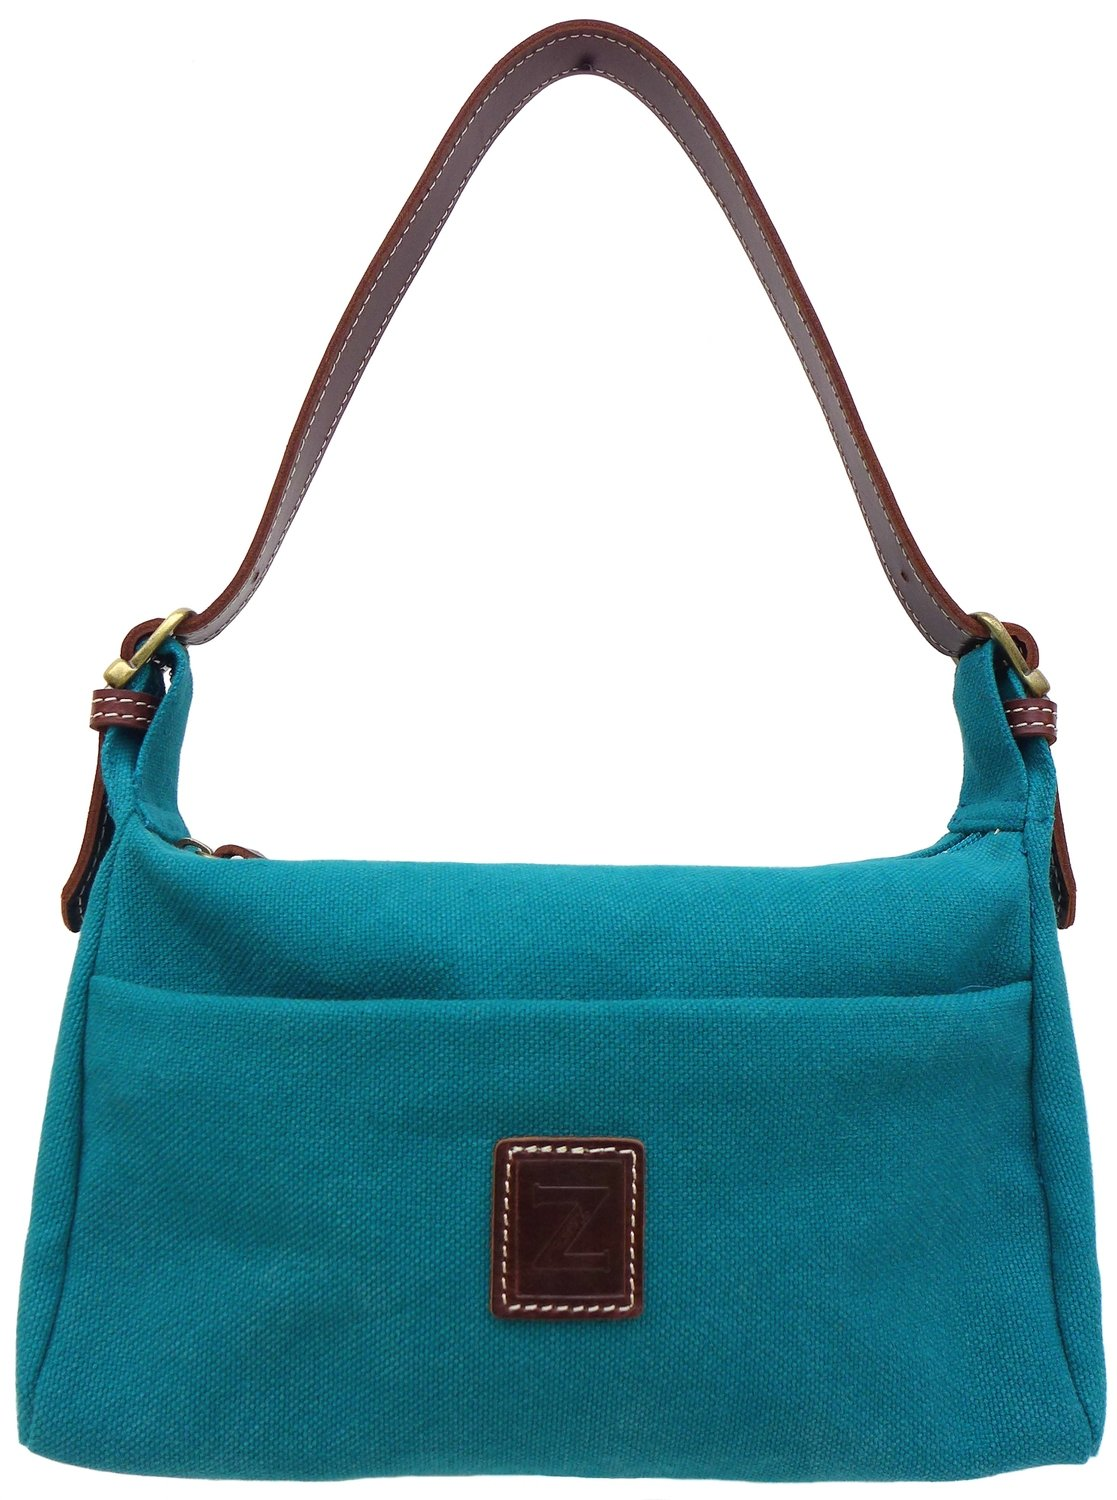 Small shoulder purse (teal)